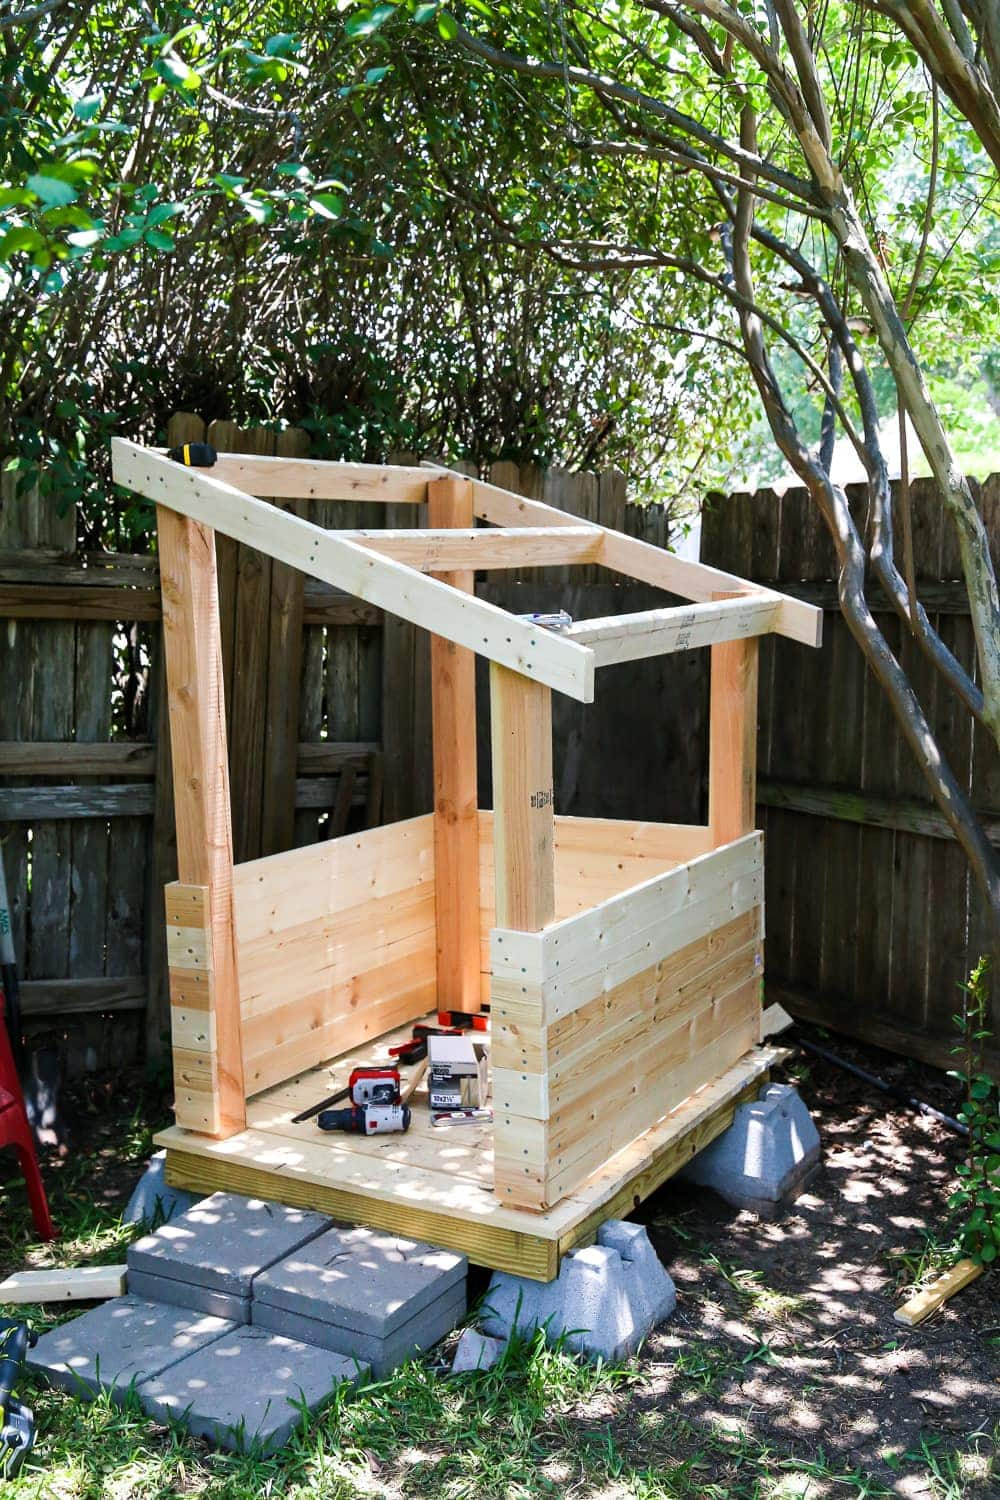 Best ideas about DIY Outdoor Playhouses . Save or Pin DIY Playhouse How to Build a Backyard Playhouse for Your Now.